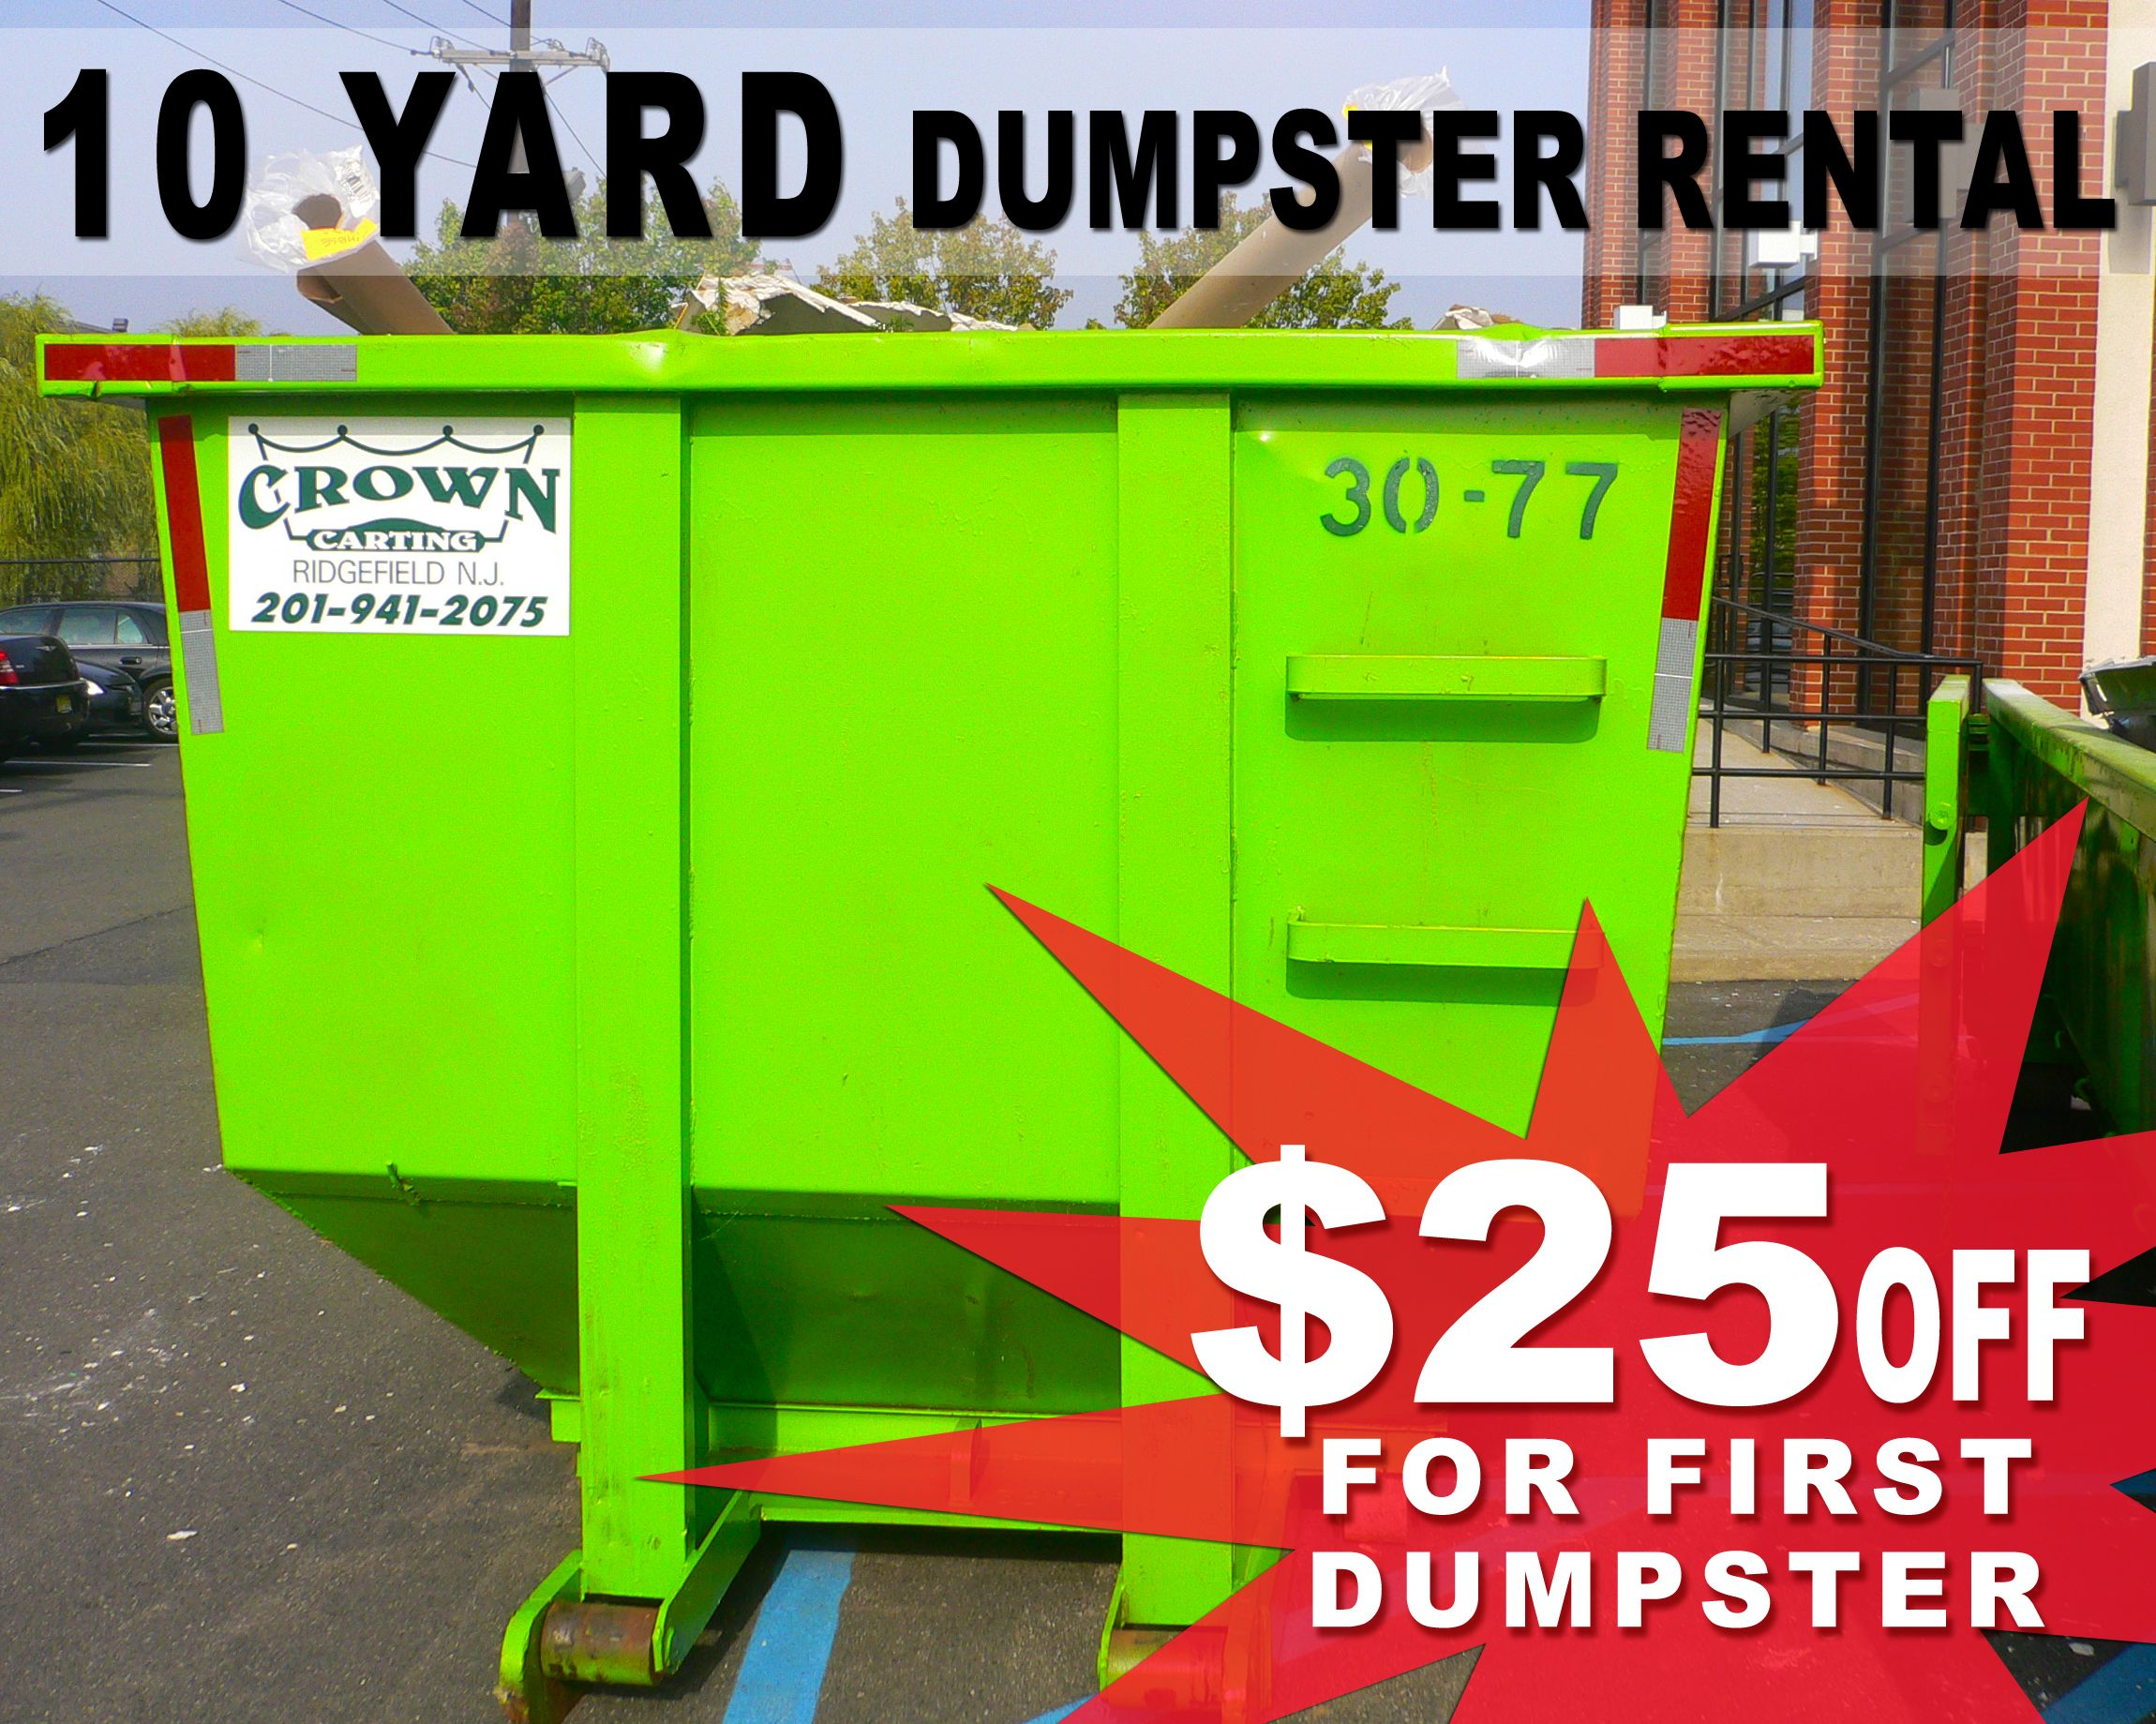 Our Wide Range Of Dumpsters For Rent Gives Us The Option To Have The Right Solution To Your Construction Applications We P Dumpster Rental Dumpster Demolition